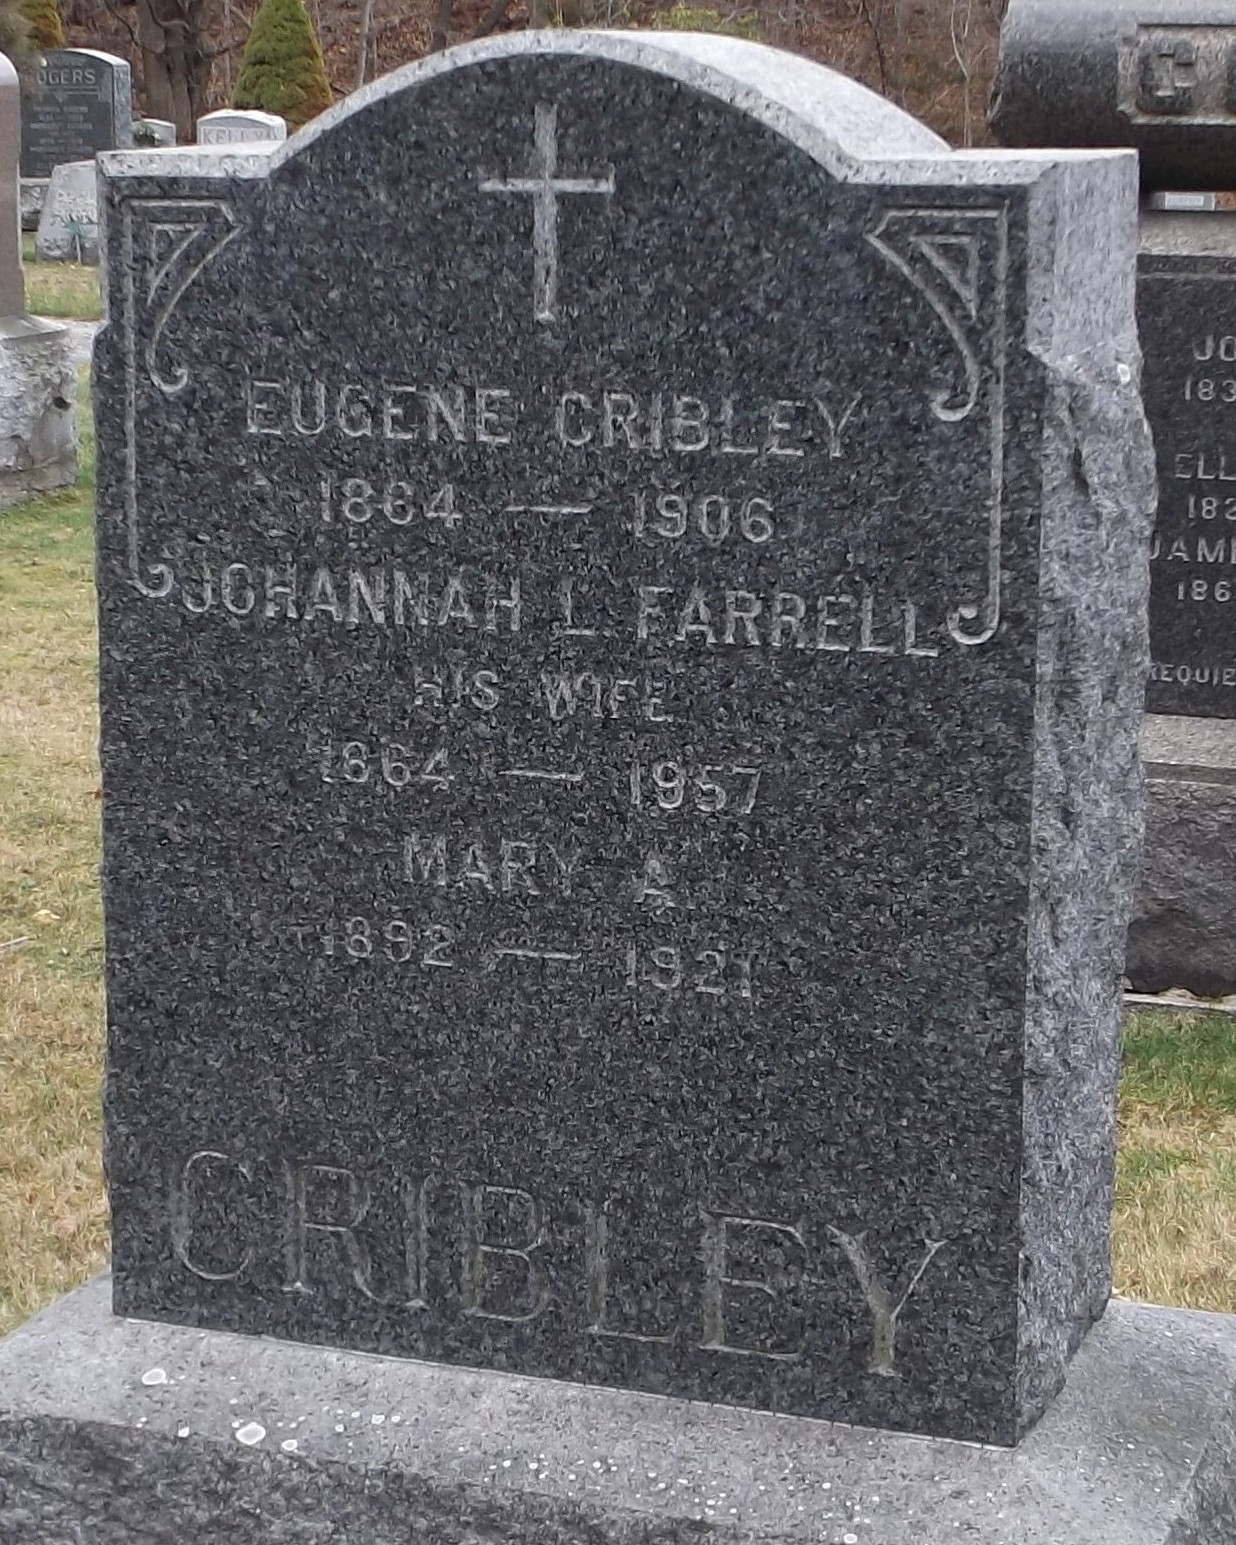 Deputy Sheriff Eugene Cribley | Dutchess County Sheriff's Office, New York